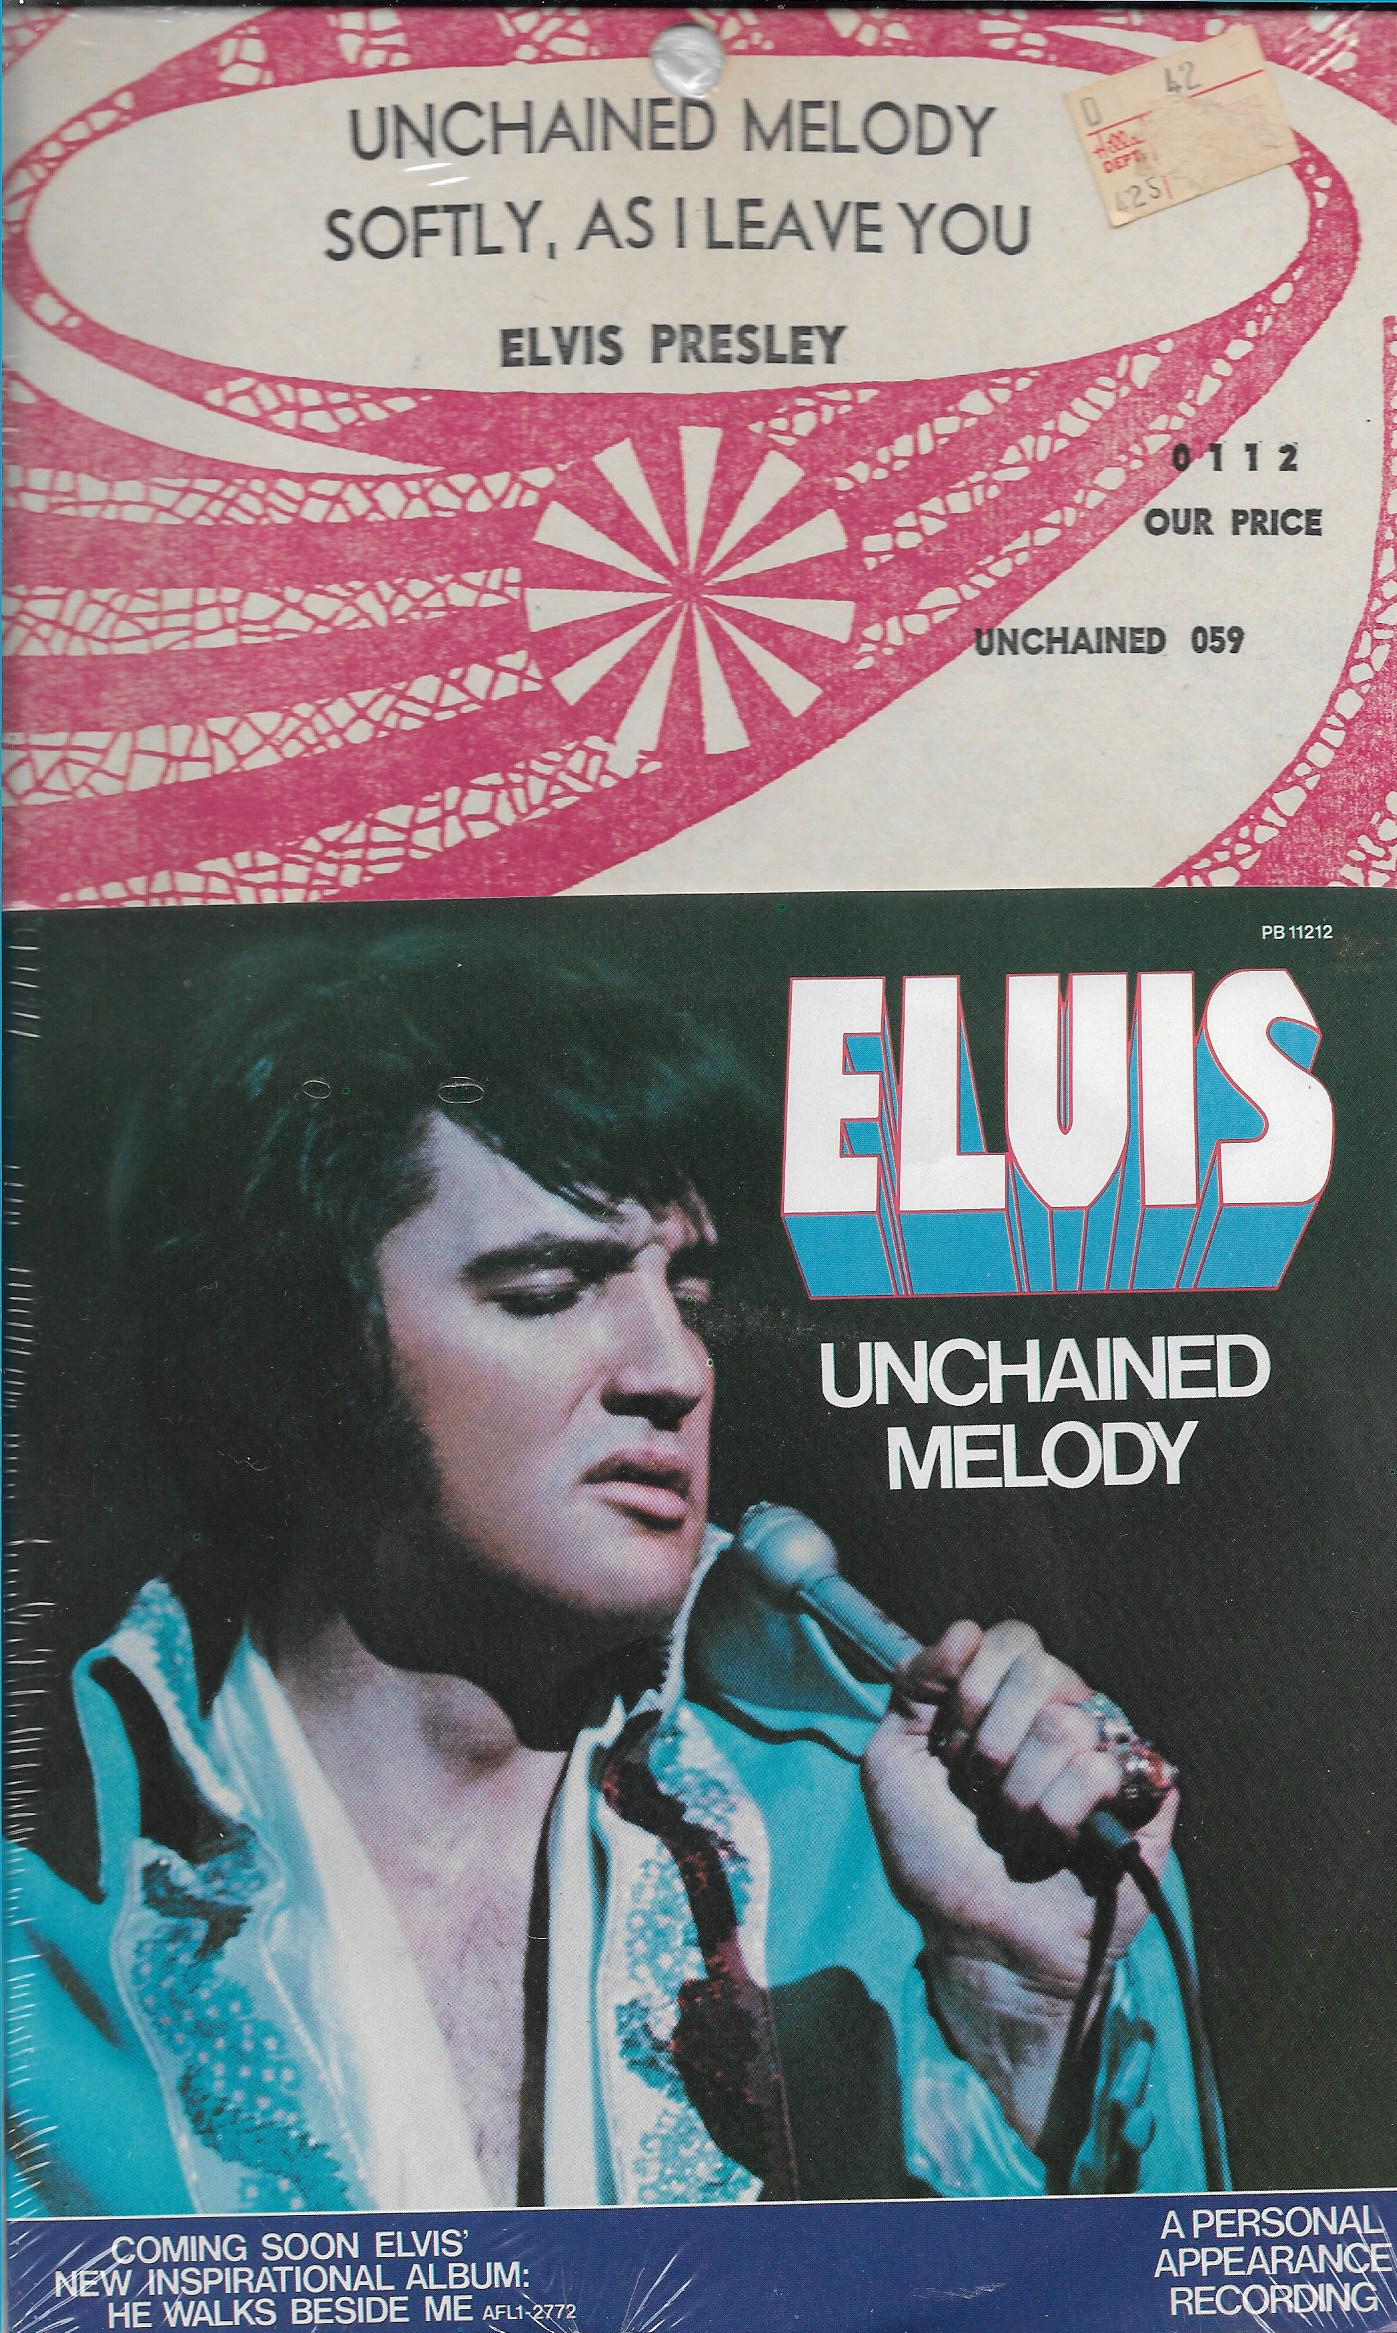 Unchained Melody / Softly, As I Leave You Pb-11212-78-elgk2x